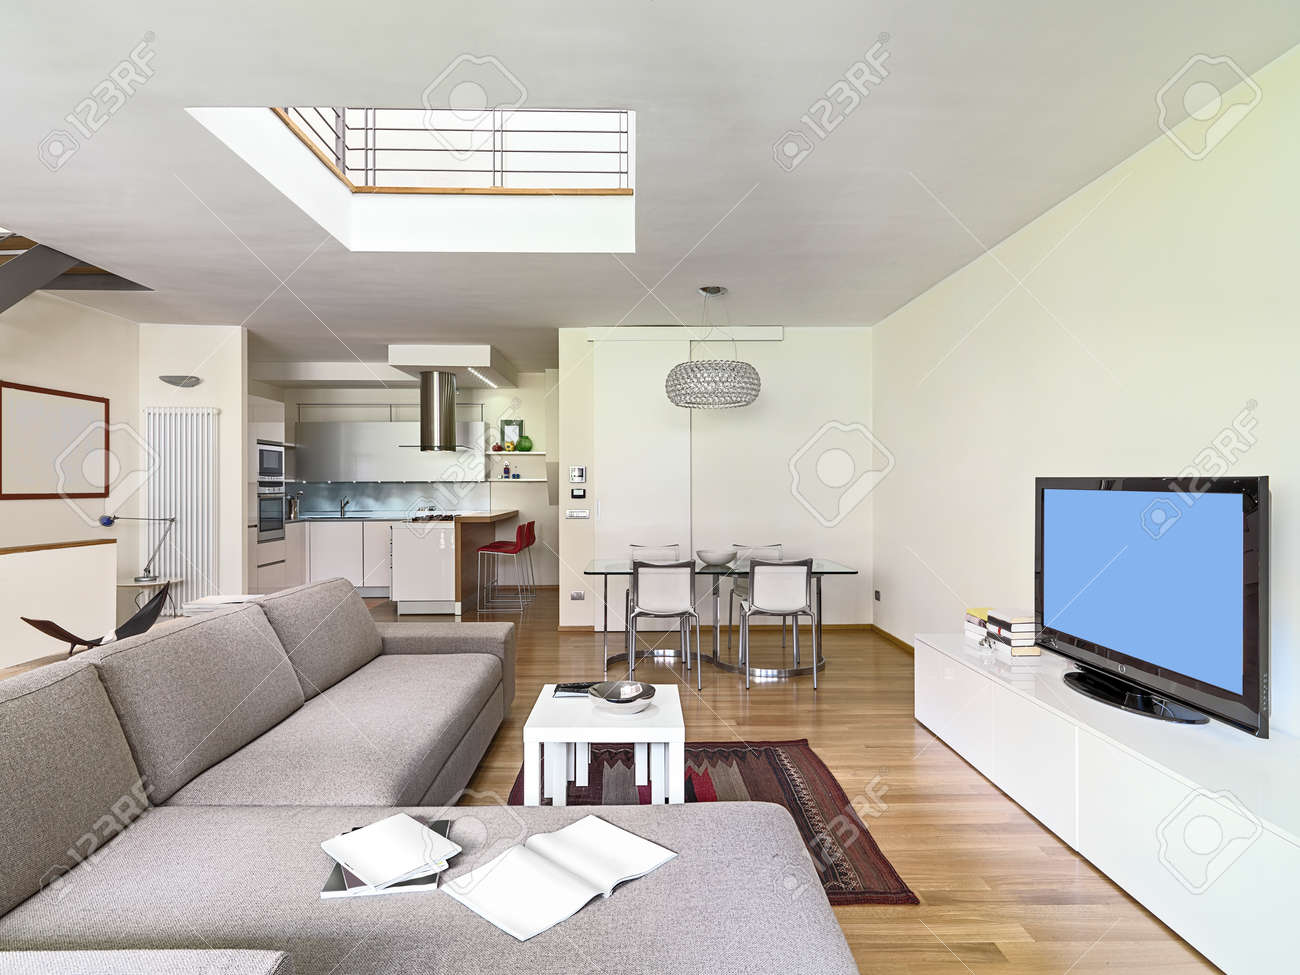 interior view of a modern living room in the attic room with wood floor  overlooking on